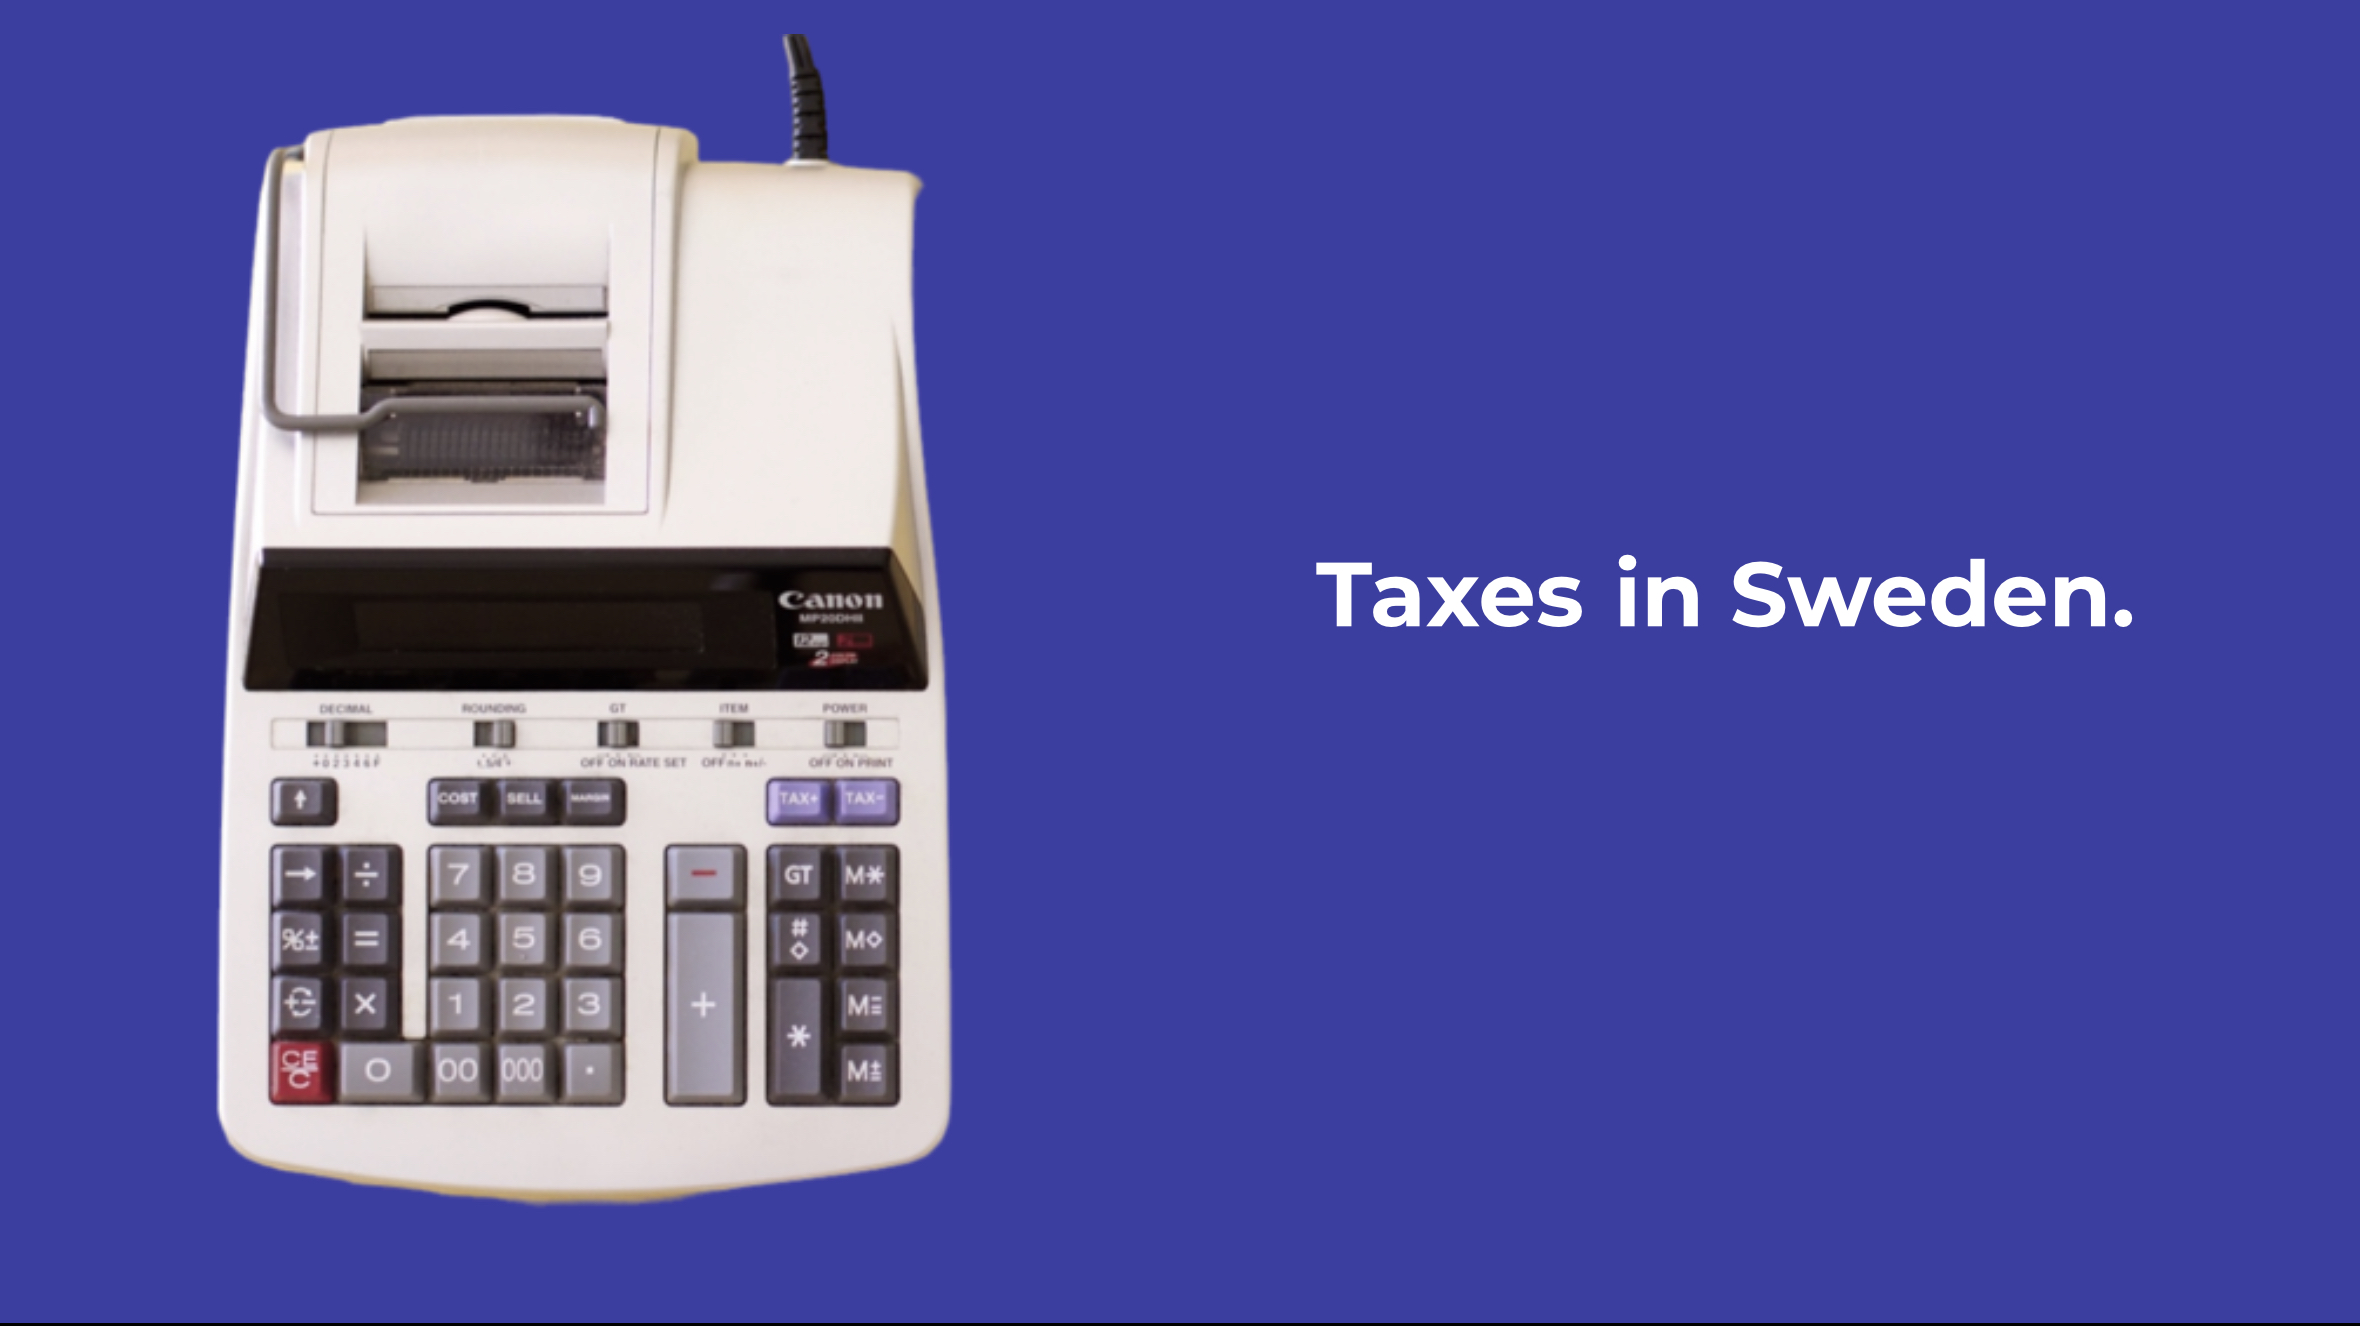 Taxes in Sweden